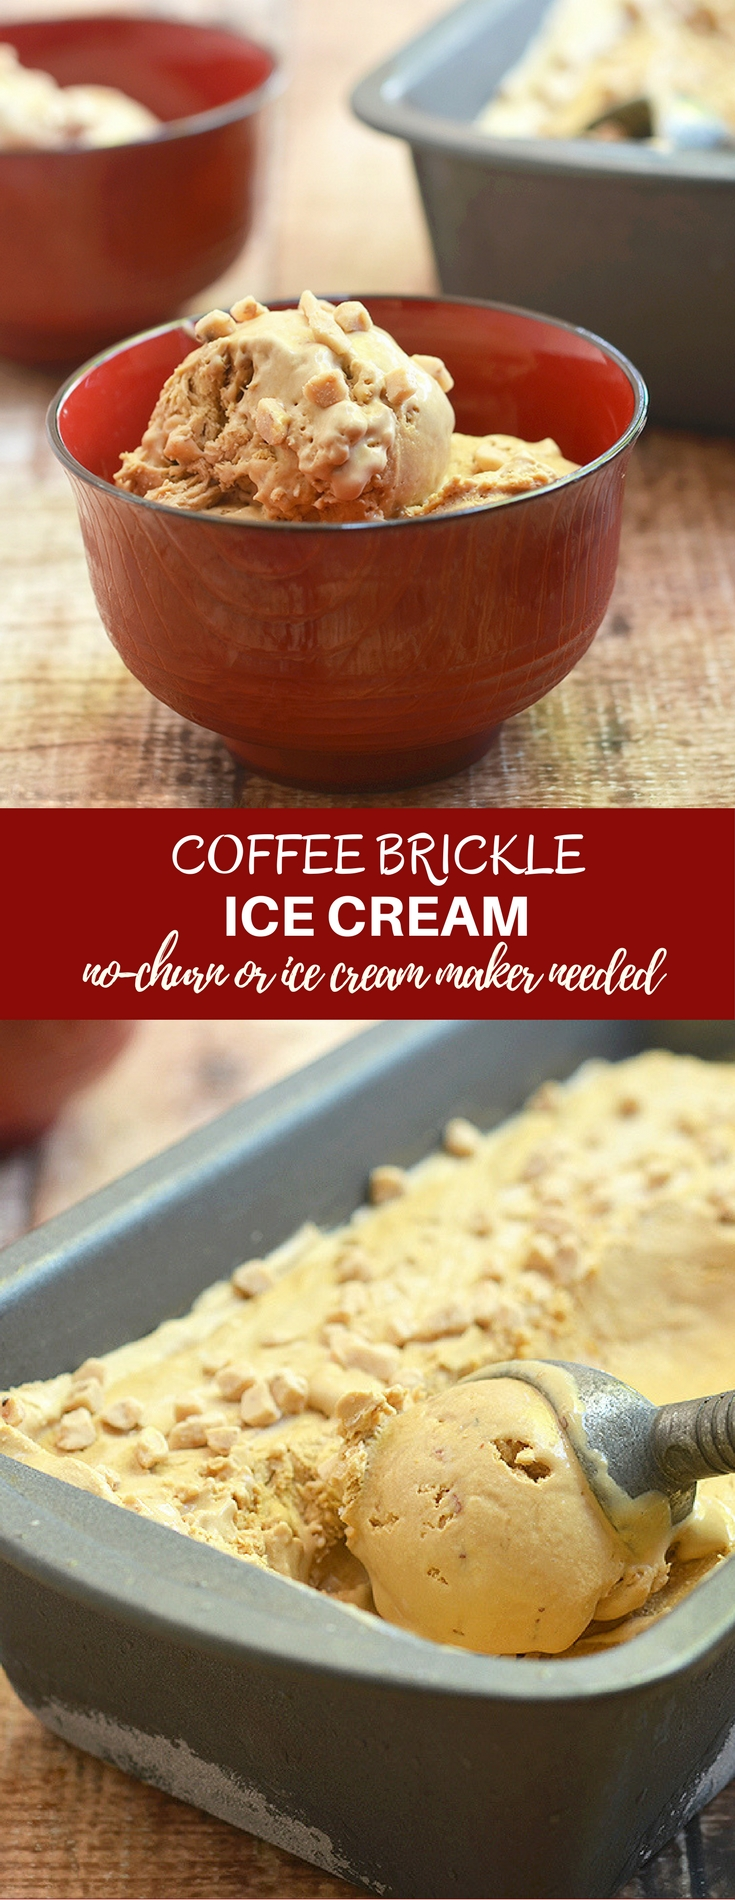 No-churn Coffee Brickle Ice Cream is sure to be favorite that's rich, silky and with the most intense coffee flavor. It only takes 4 ingredients and 10 minutes of prep time to make, and no churning or ice cream maker needed!